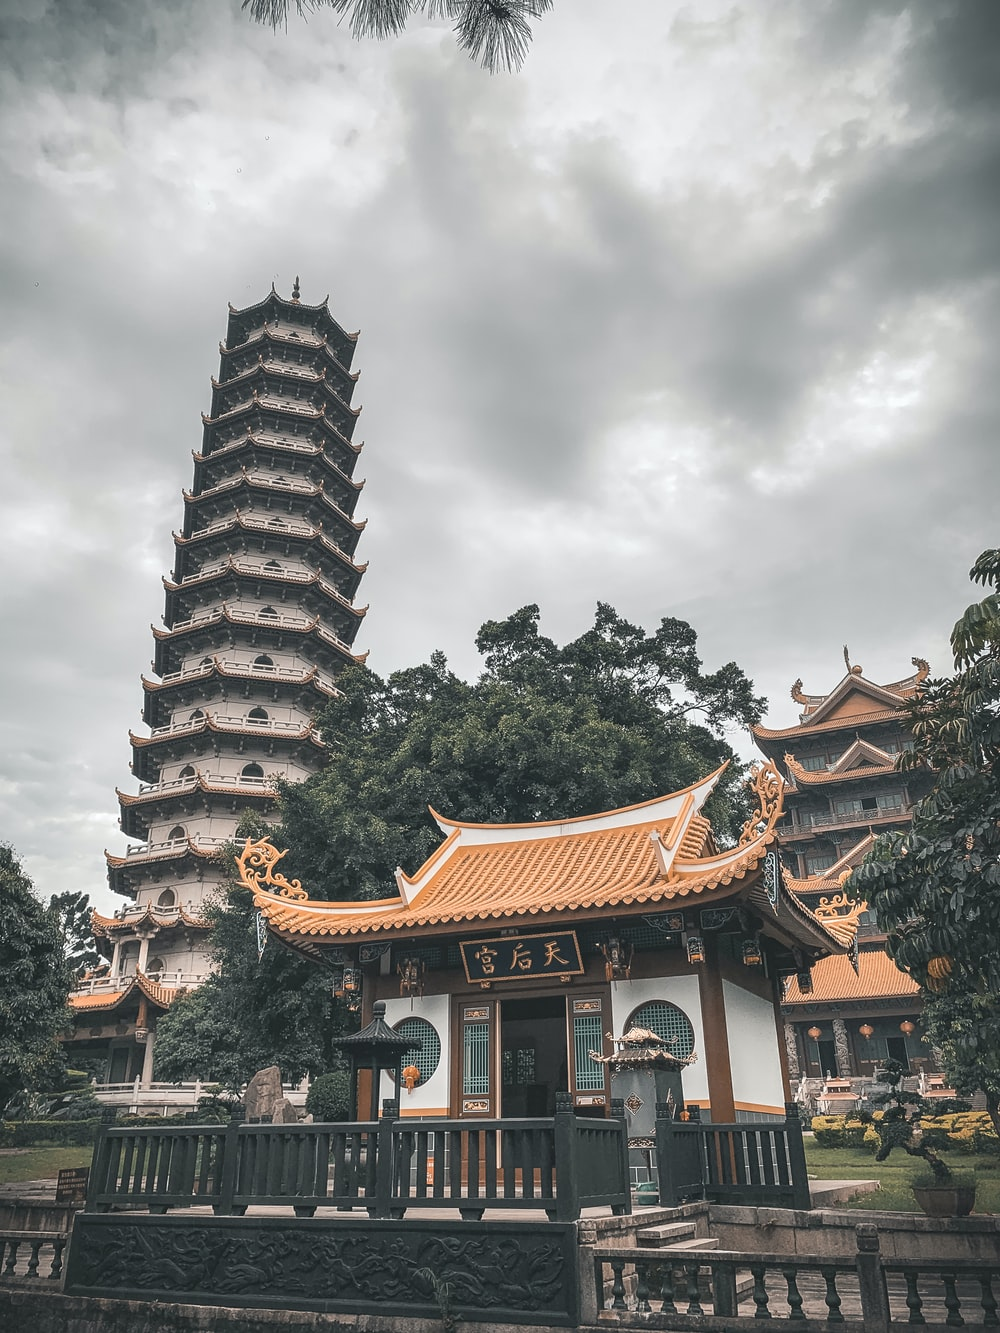 orange and white temple under white and gray sky